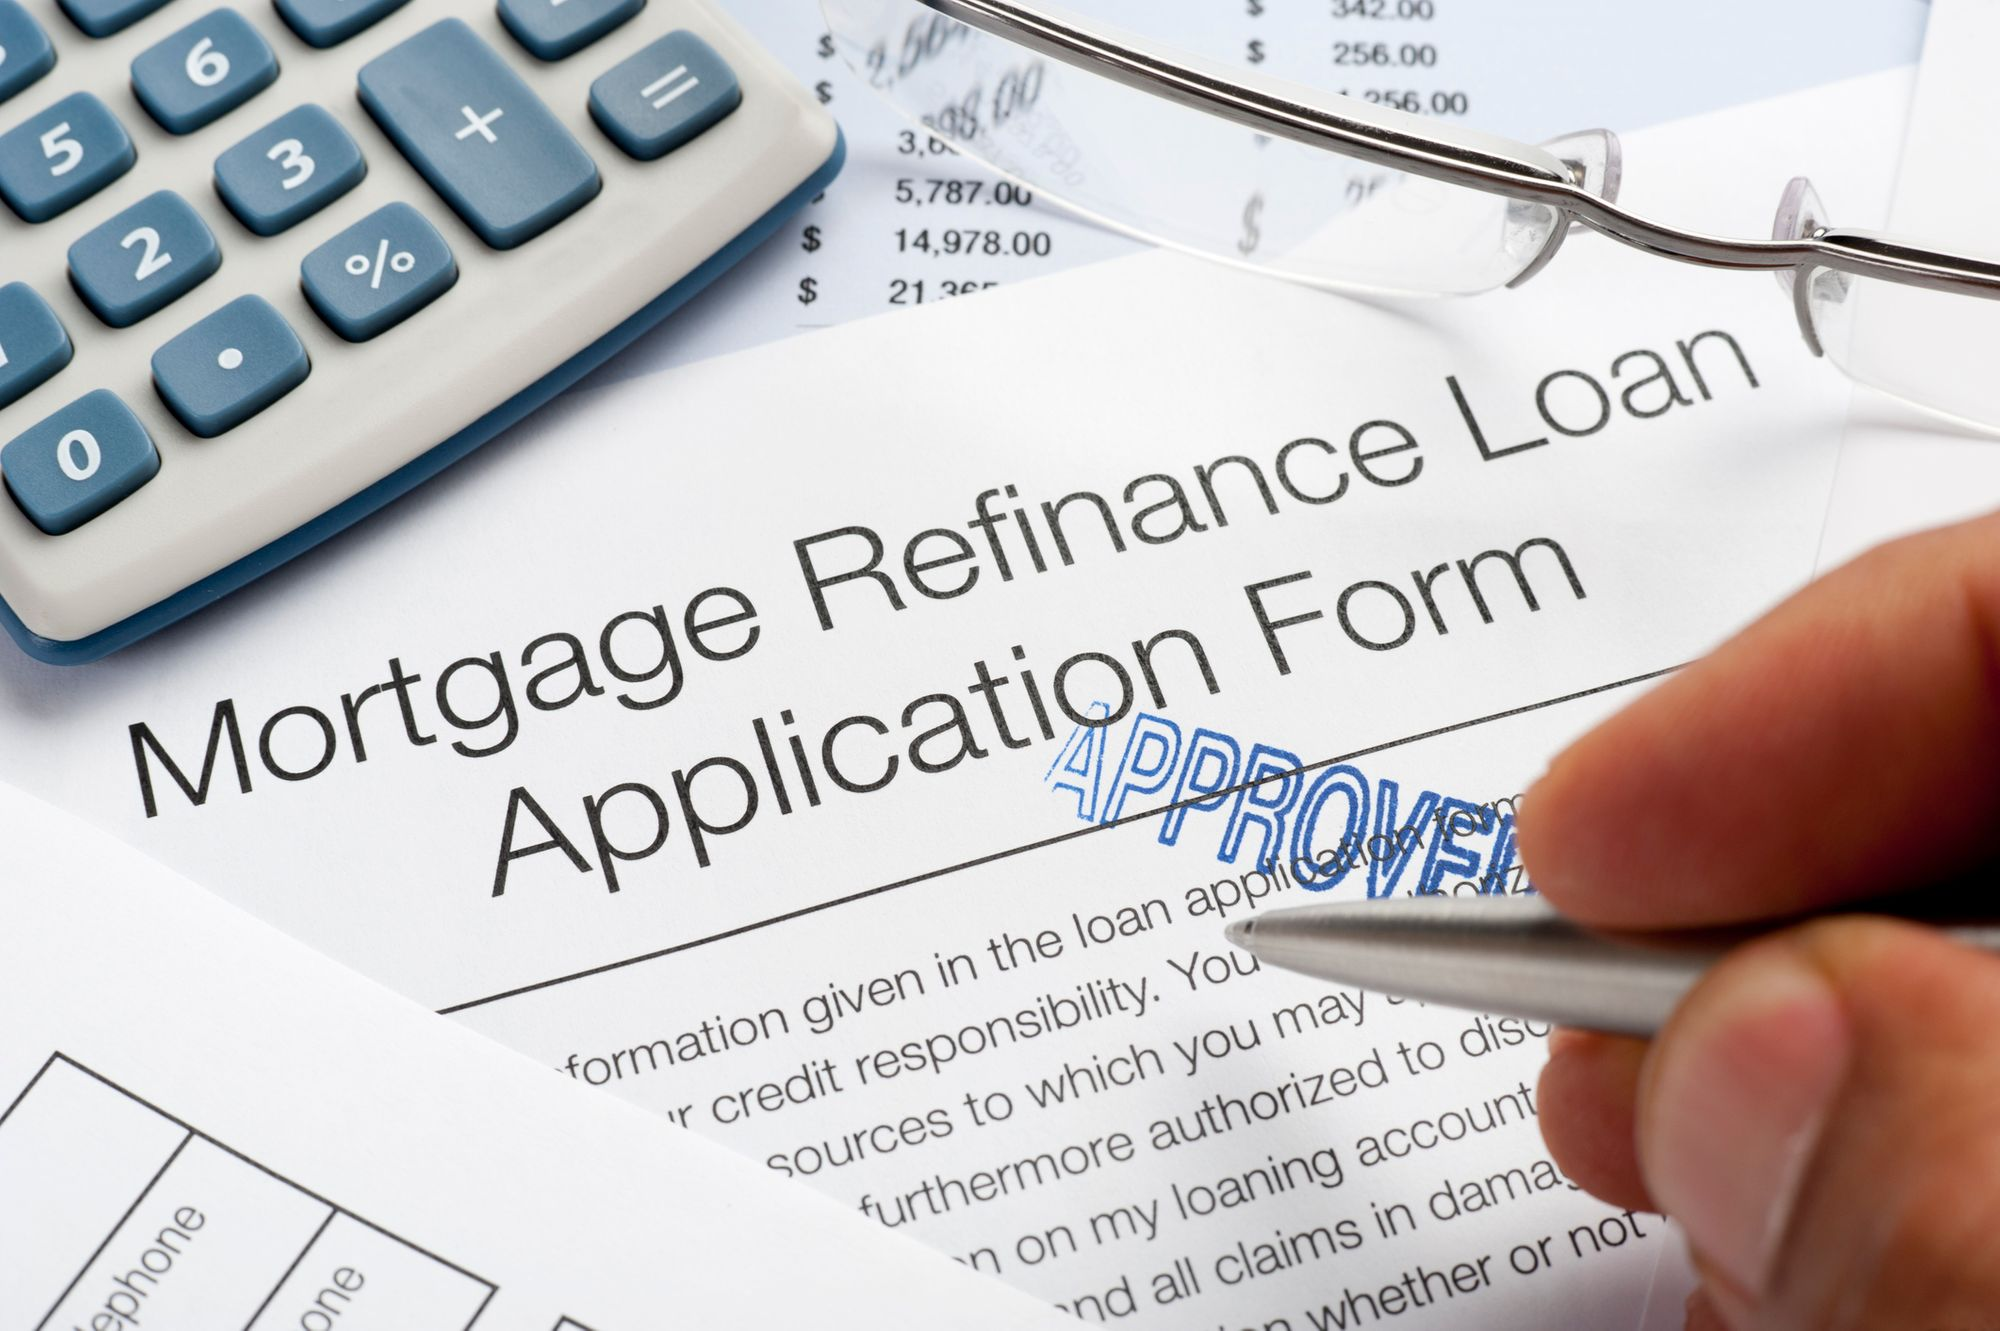 5 Mortgage Refinance Tips That Save Time and Money